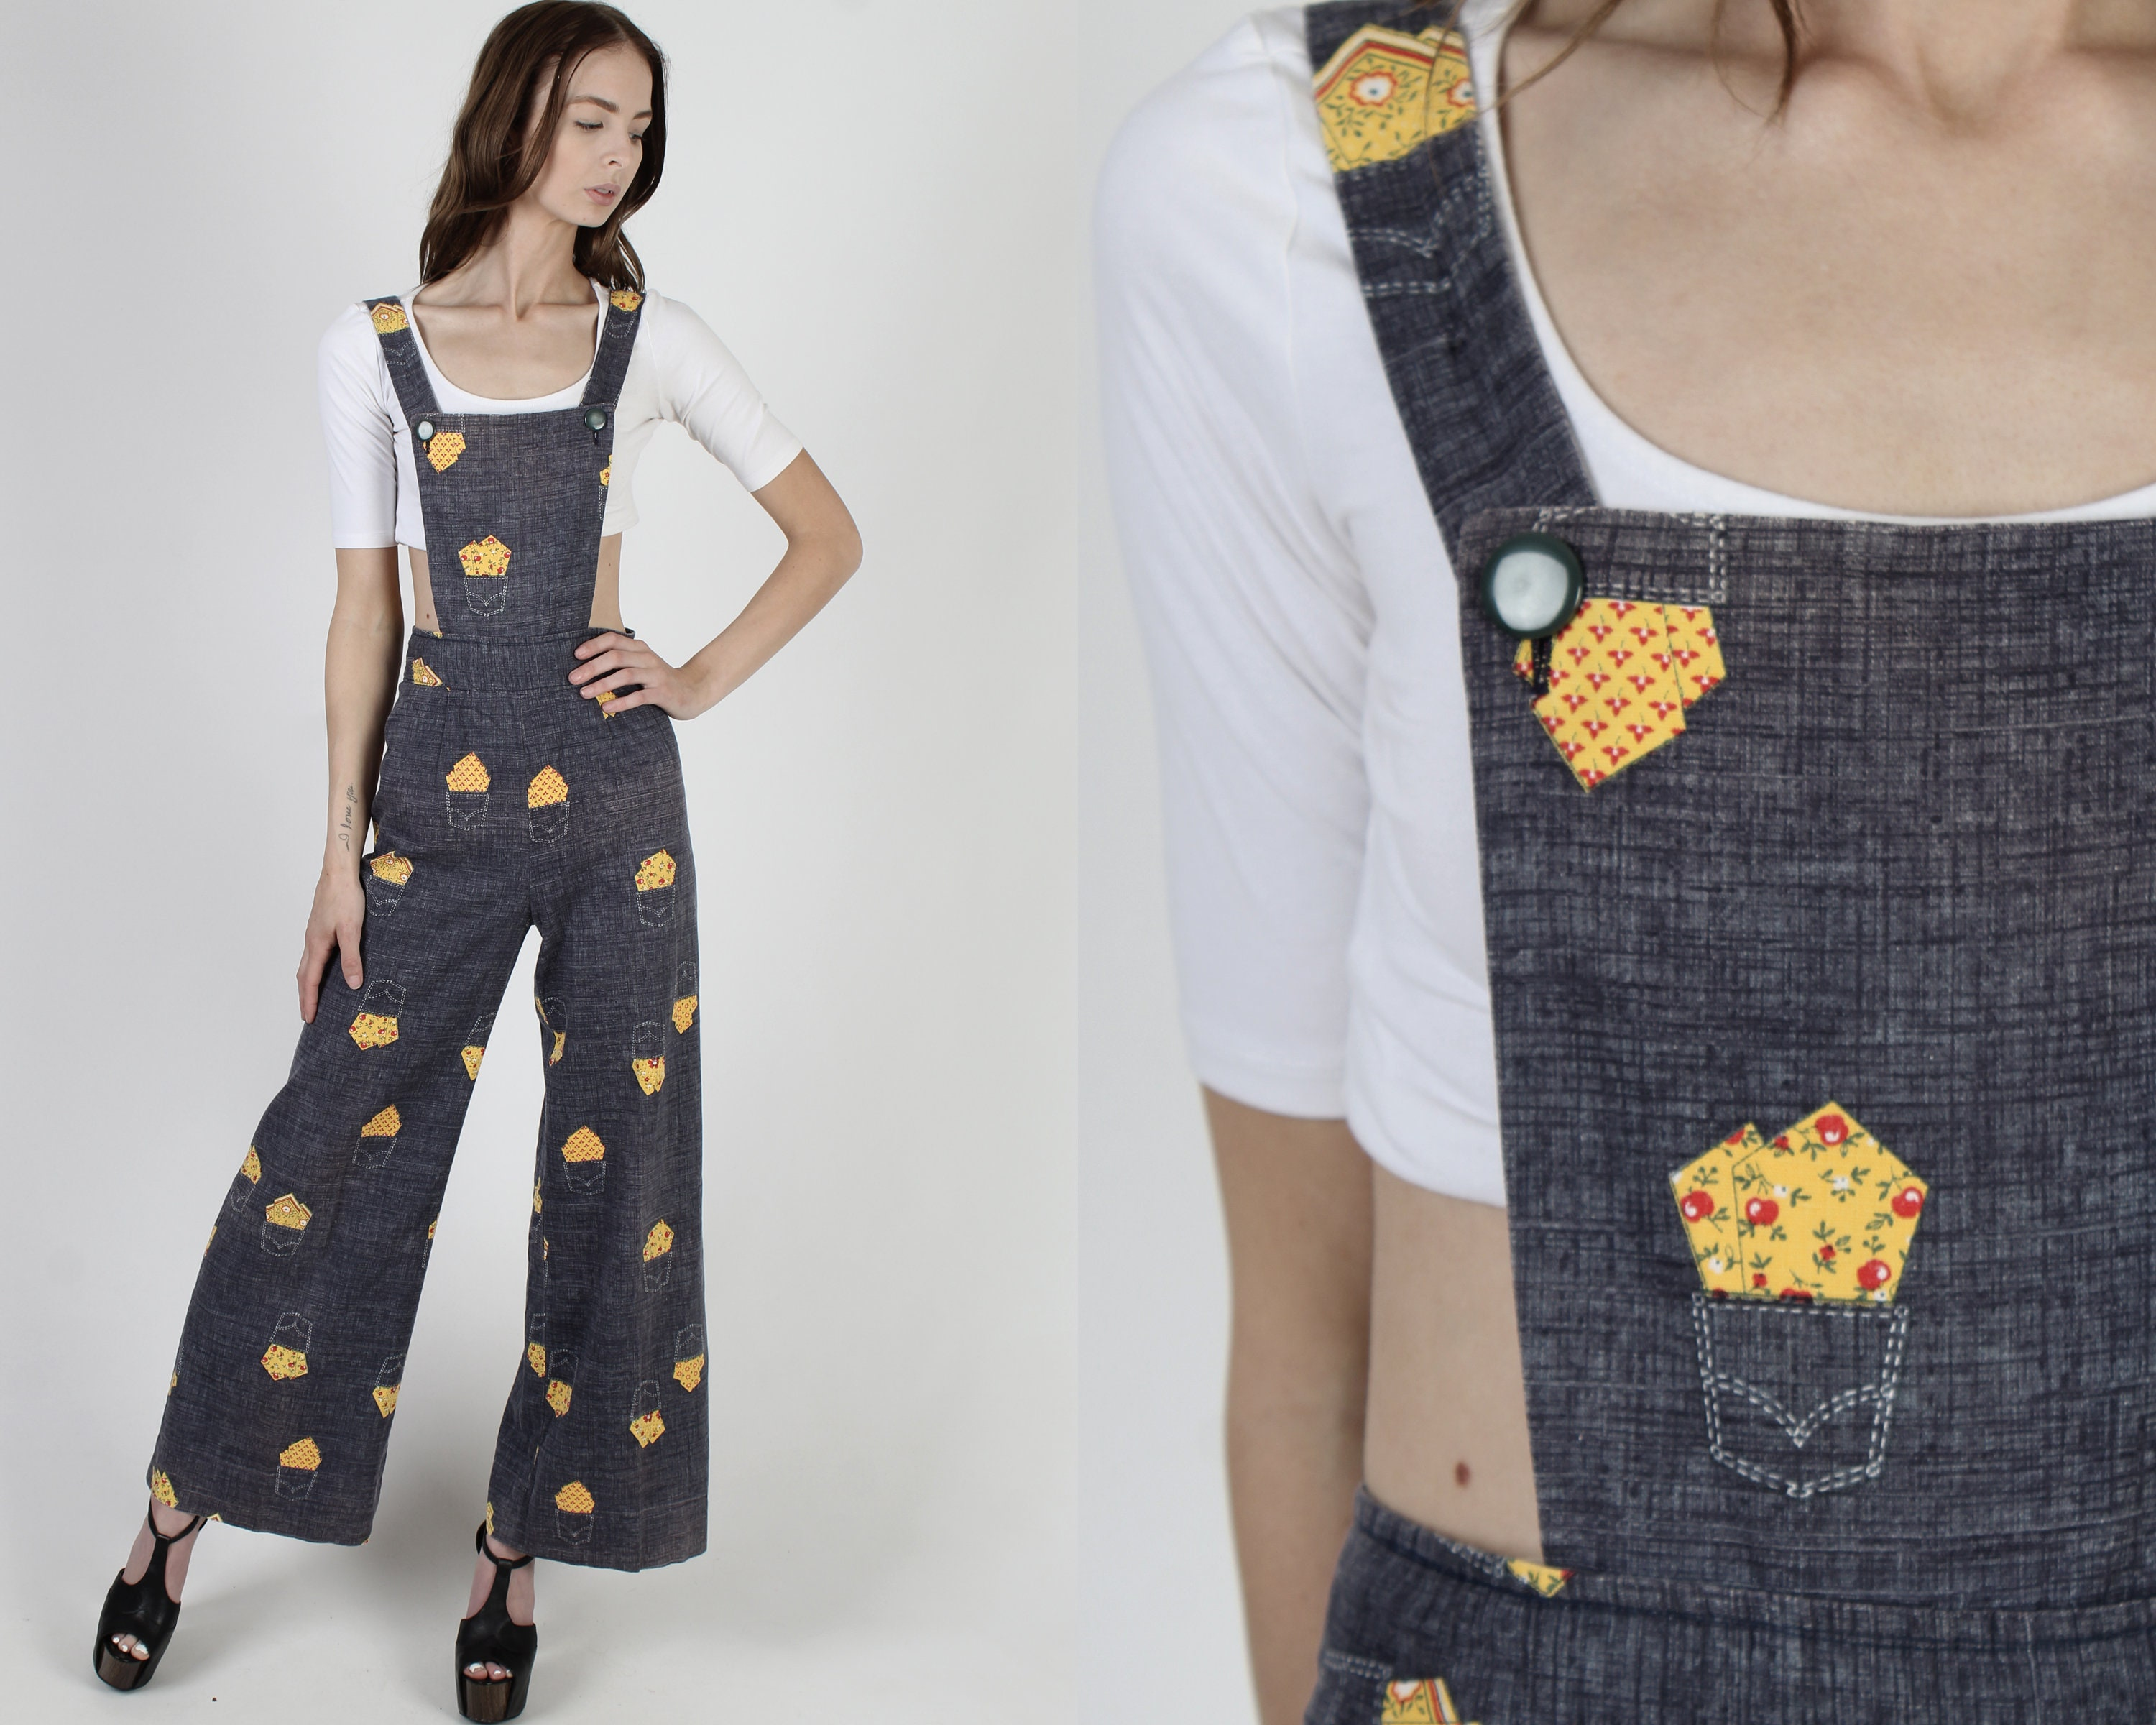 Vintage Aprons, Retro Aprons, Old Fashioned Aprons & Patterns Vintage 70S Chambray JumpsuitHomespun Handkerchief Bell Bottoms Wide Leg Pocket Print Playsuit Open Side Pinafore Apron $118.80 AT vintagedancer.com